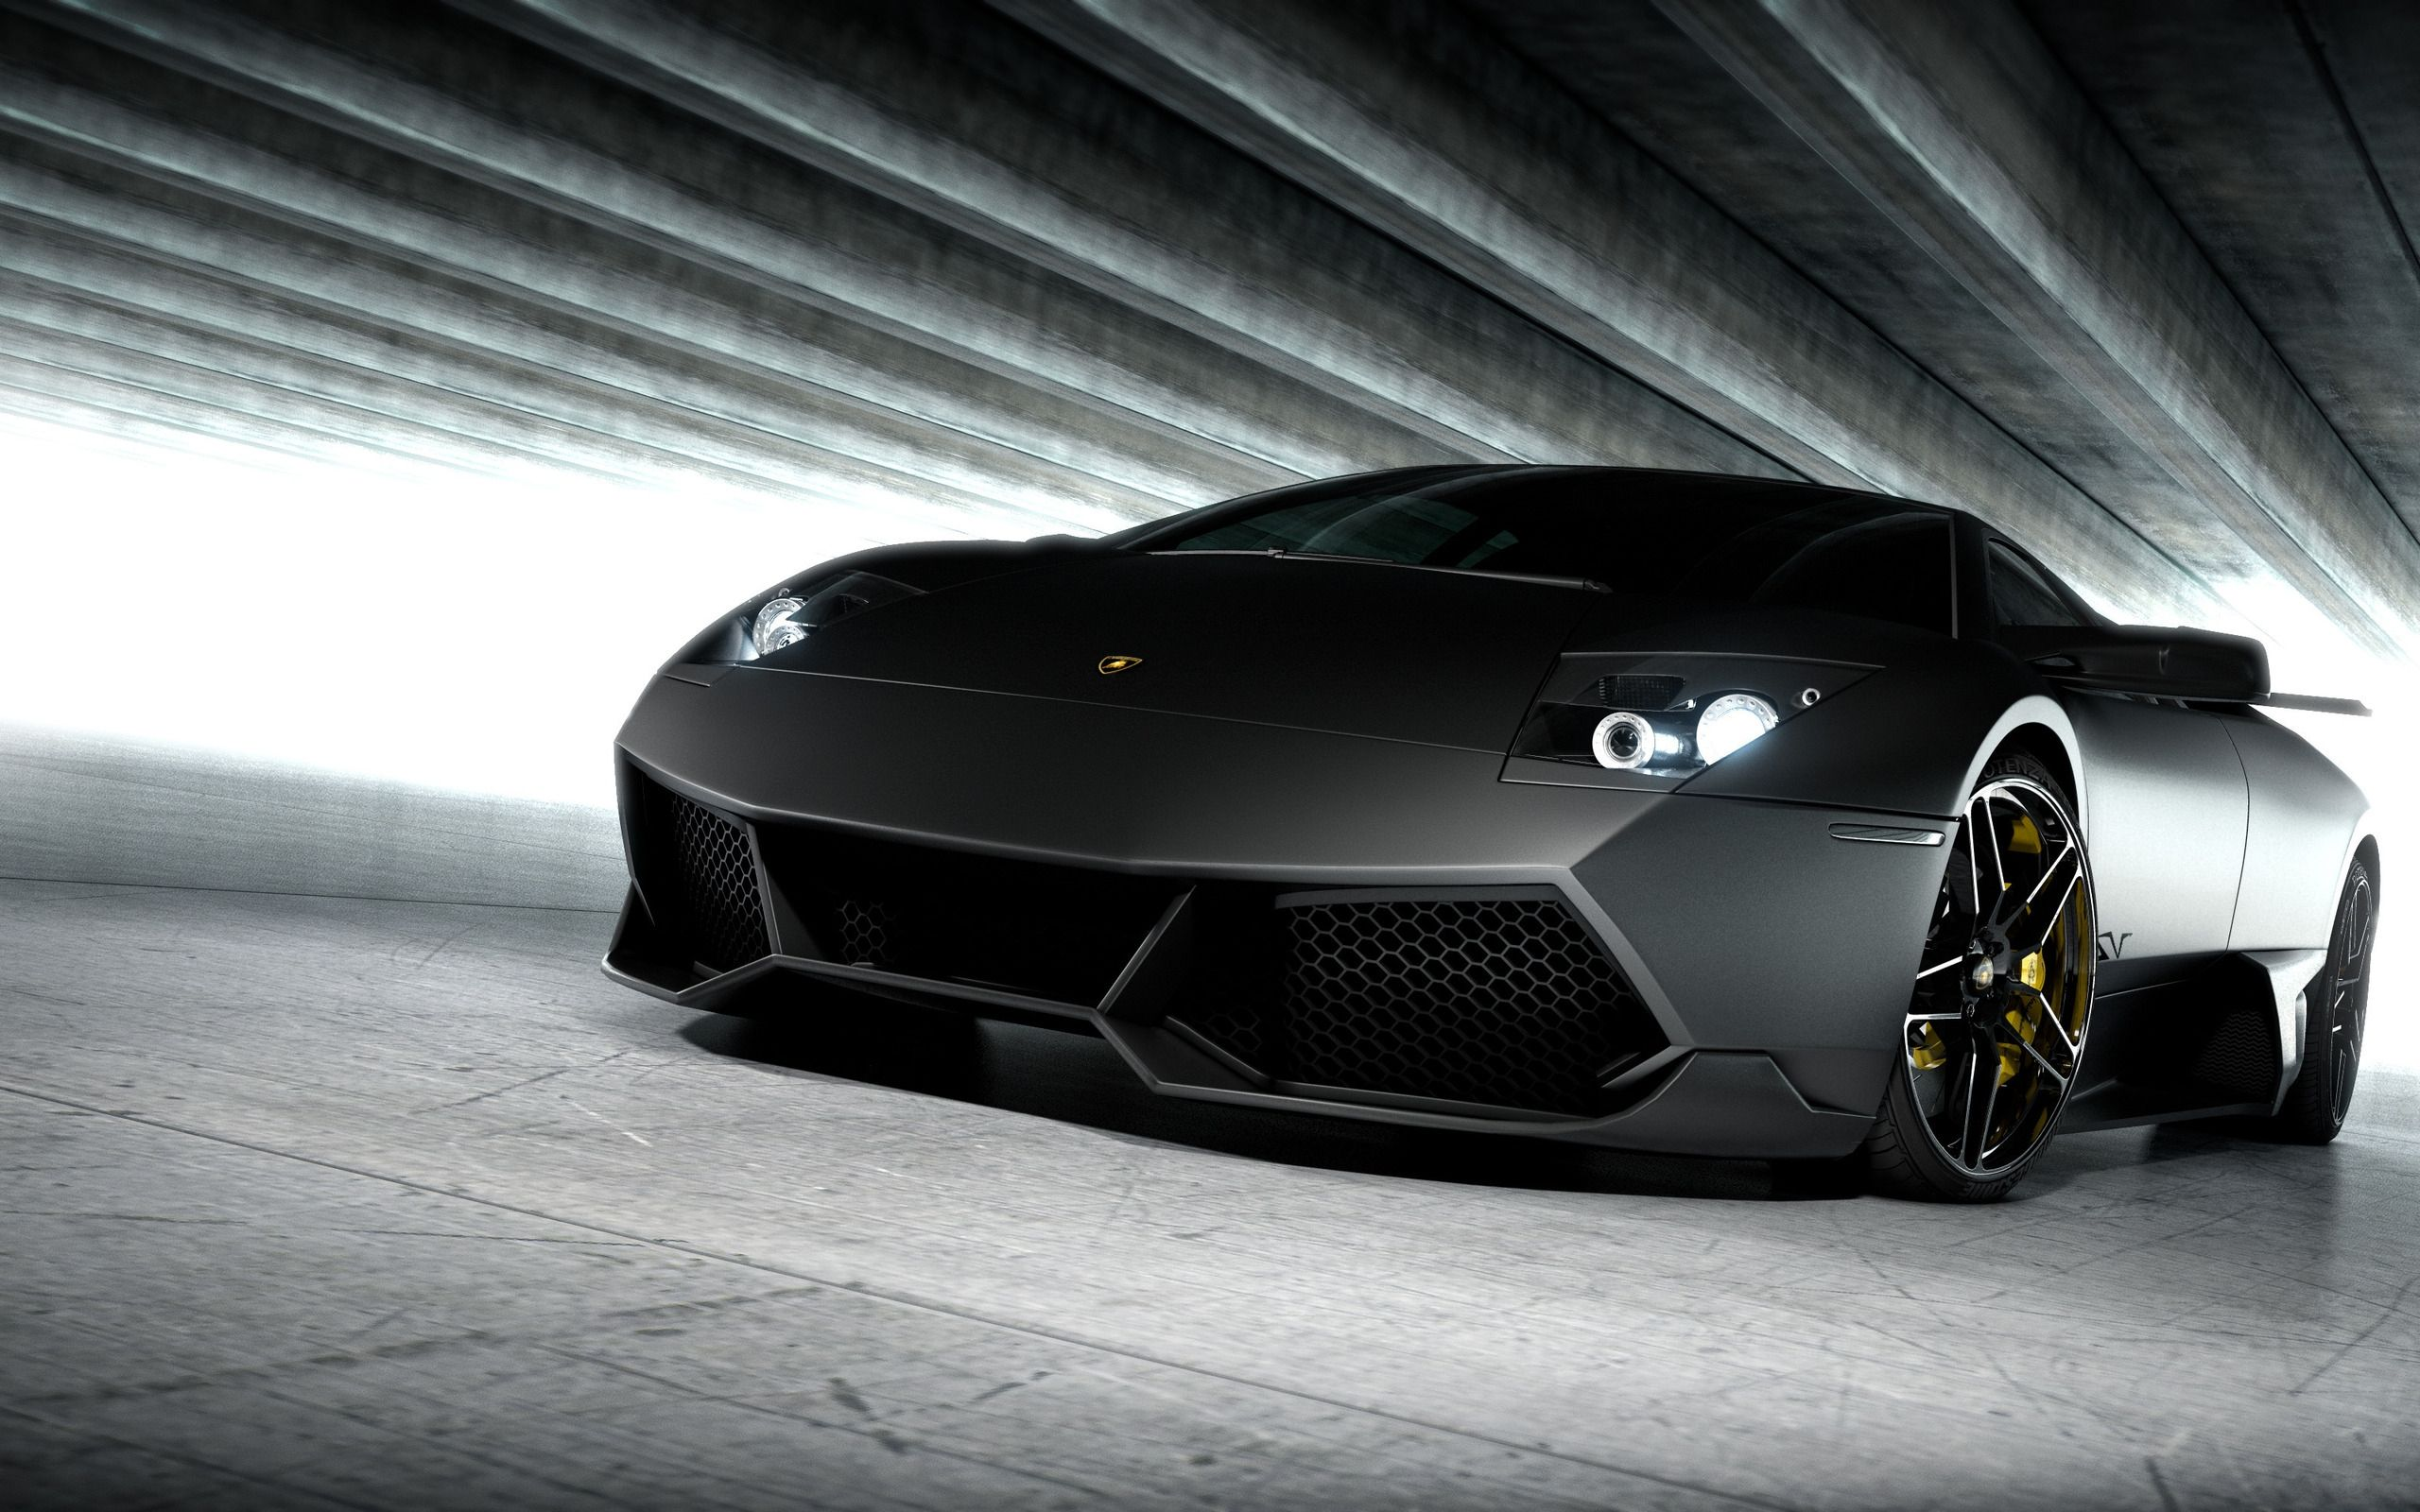 Fast Cars Wallpapers - Top Free Fast